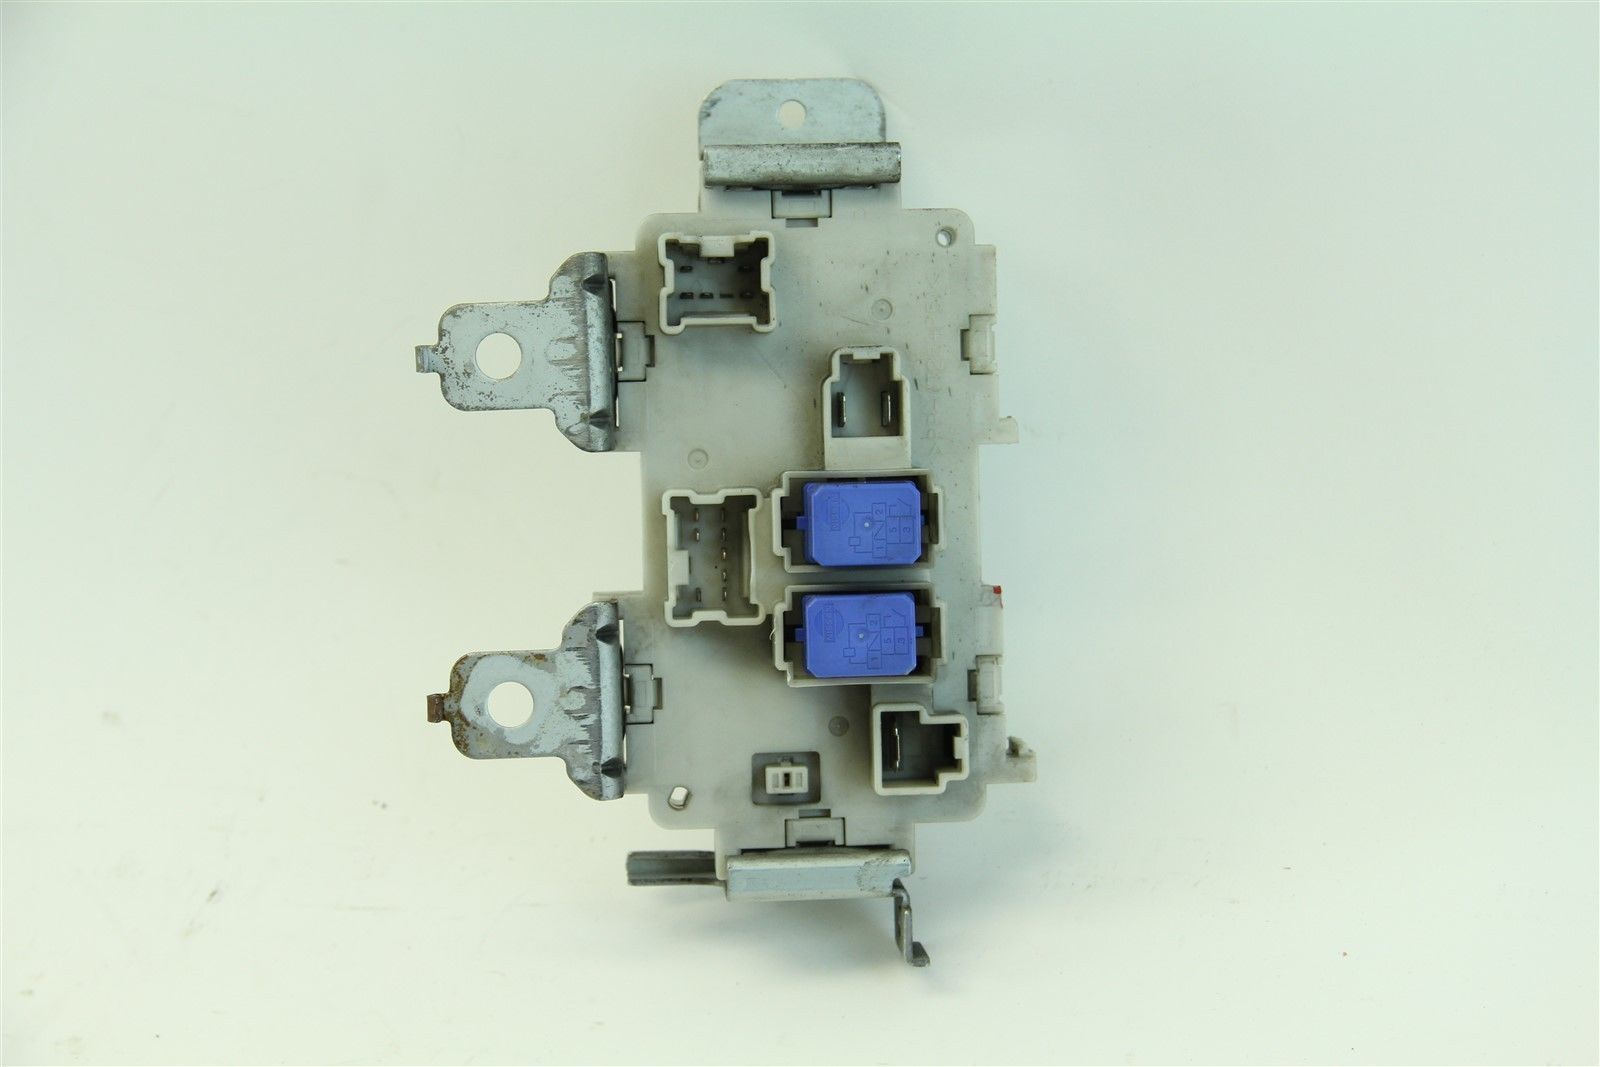 ... Infiniti G35 Coupe 2003-2004 Under Dash Fuse Box Junction Assembly, ...